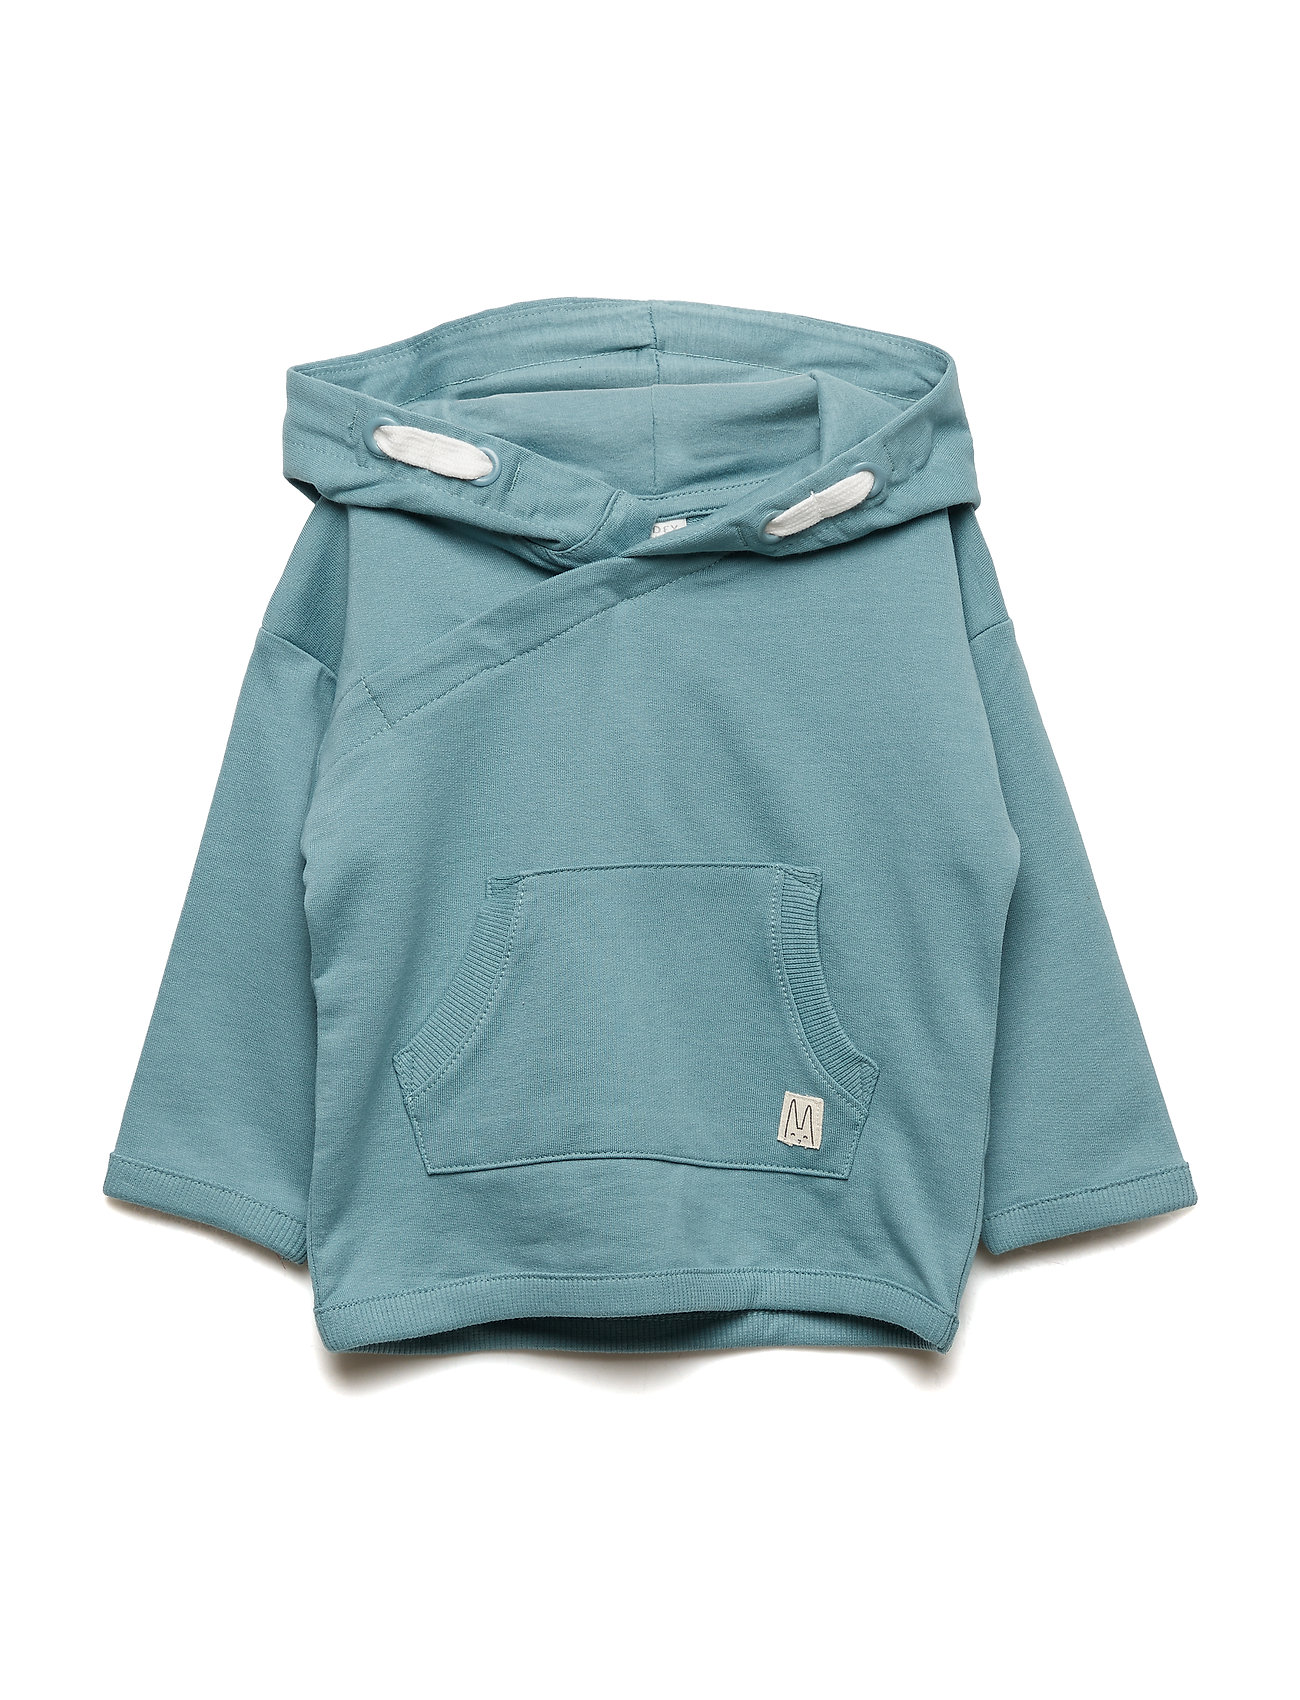 Lindex Hooded sweatshirt with double pocket - DUSTY TURQUOISE